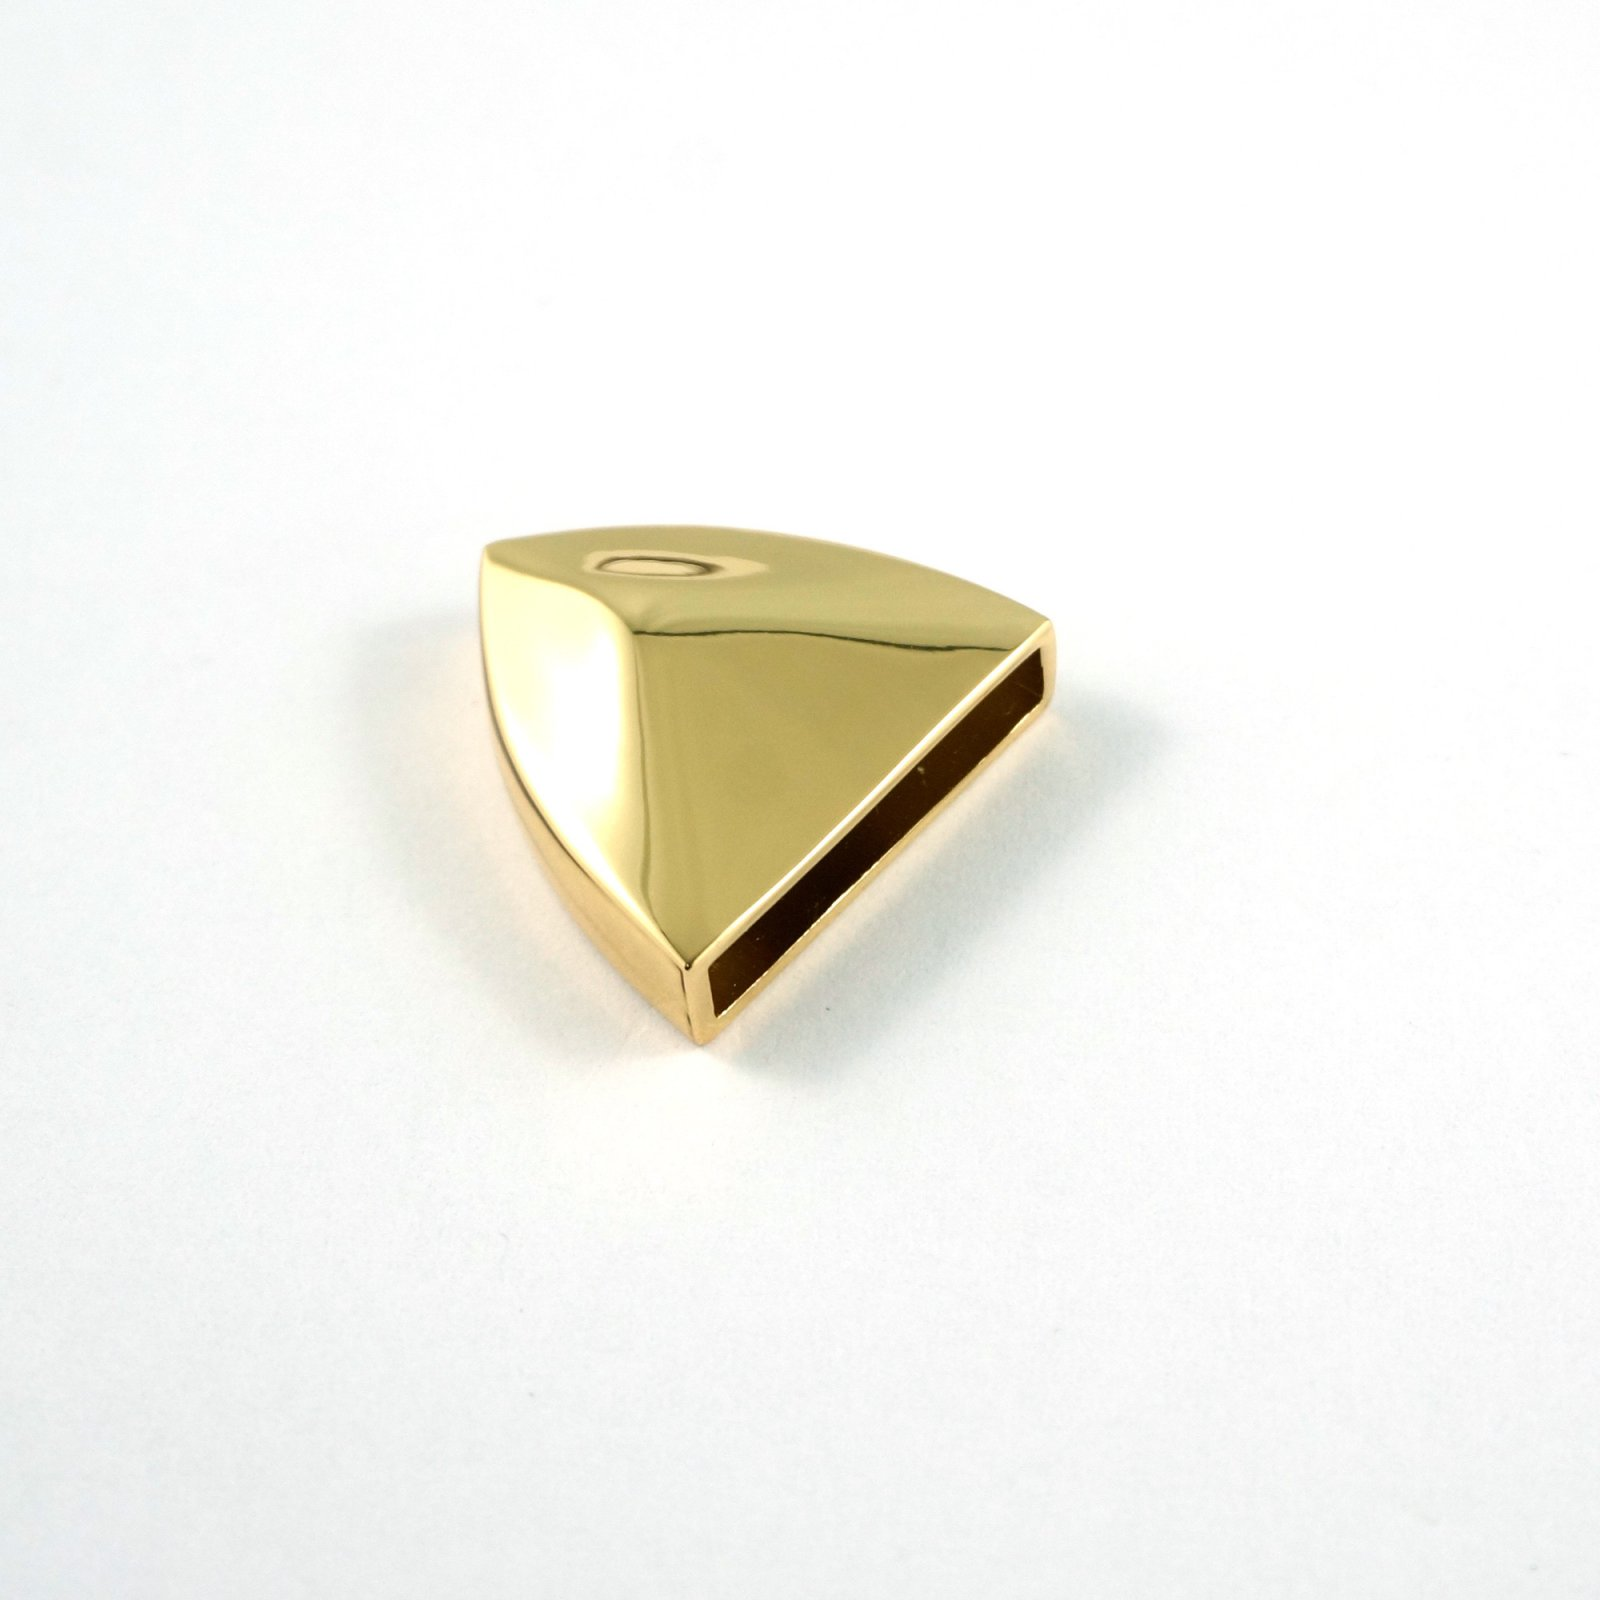 Emmaline - Pointed Strap End Caps - Gold